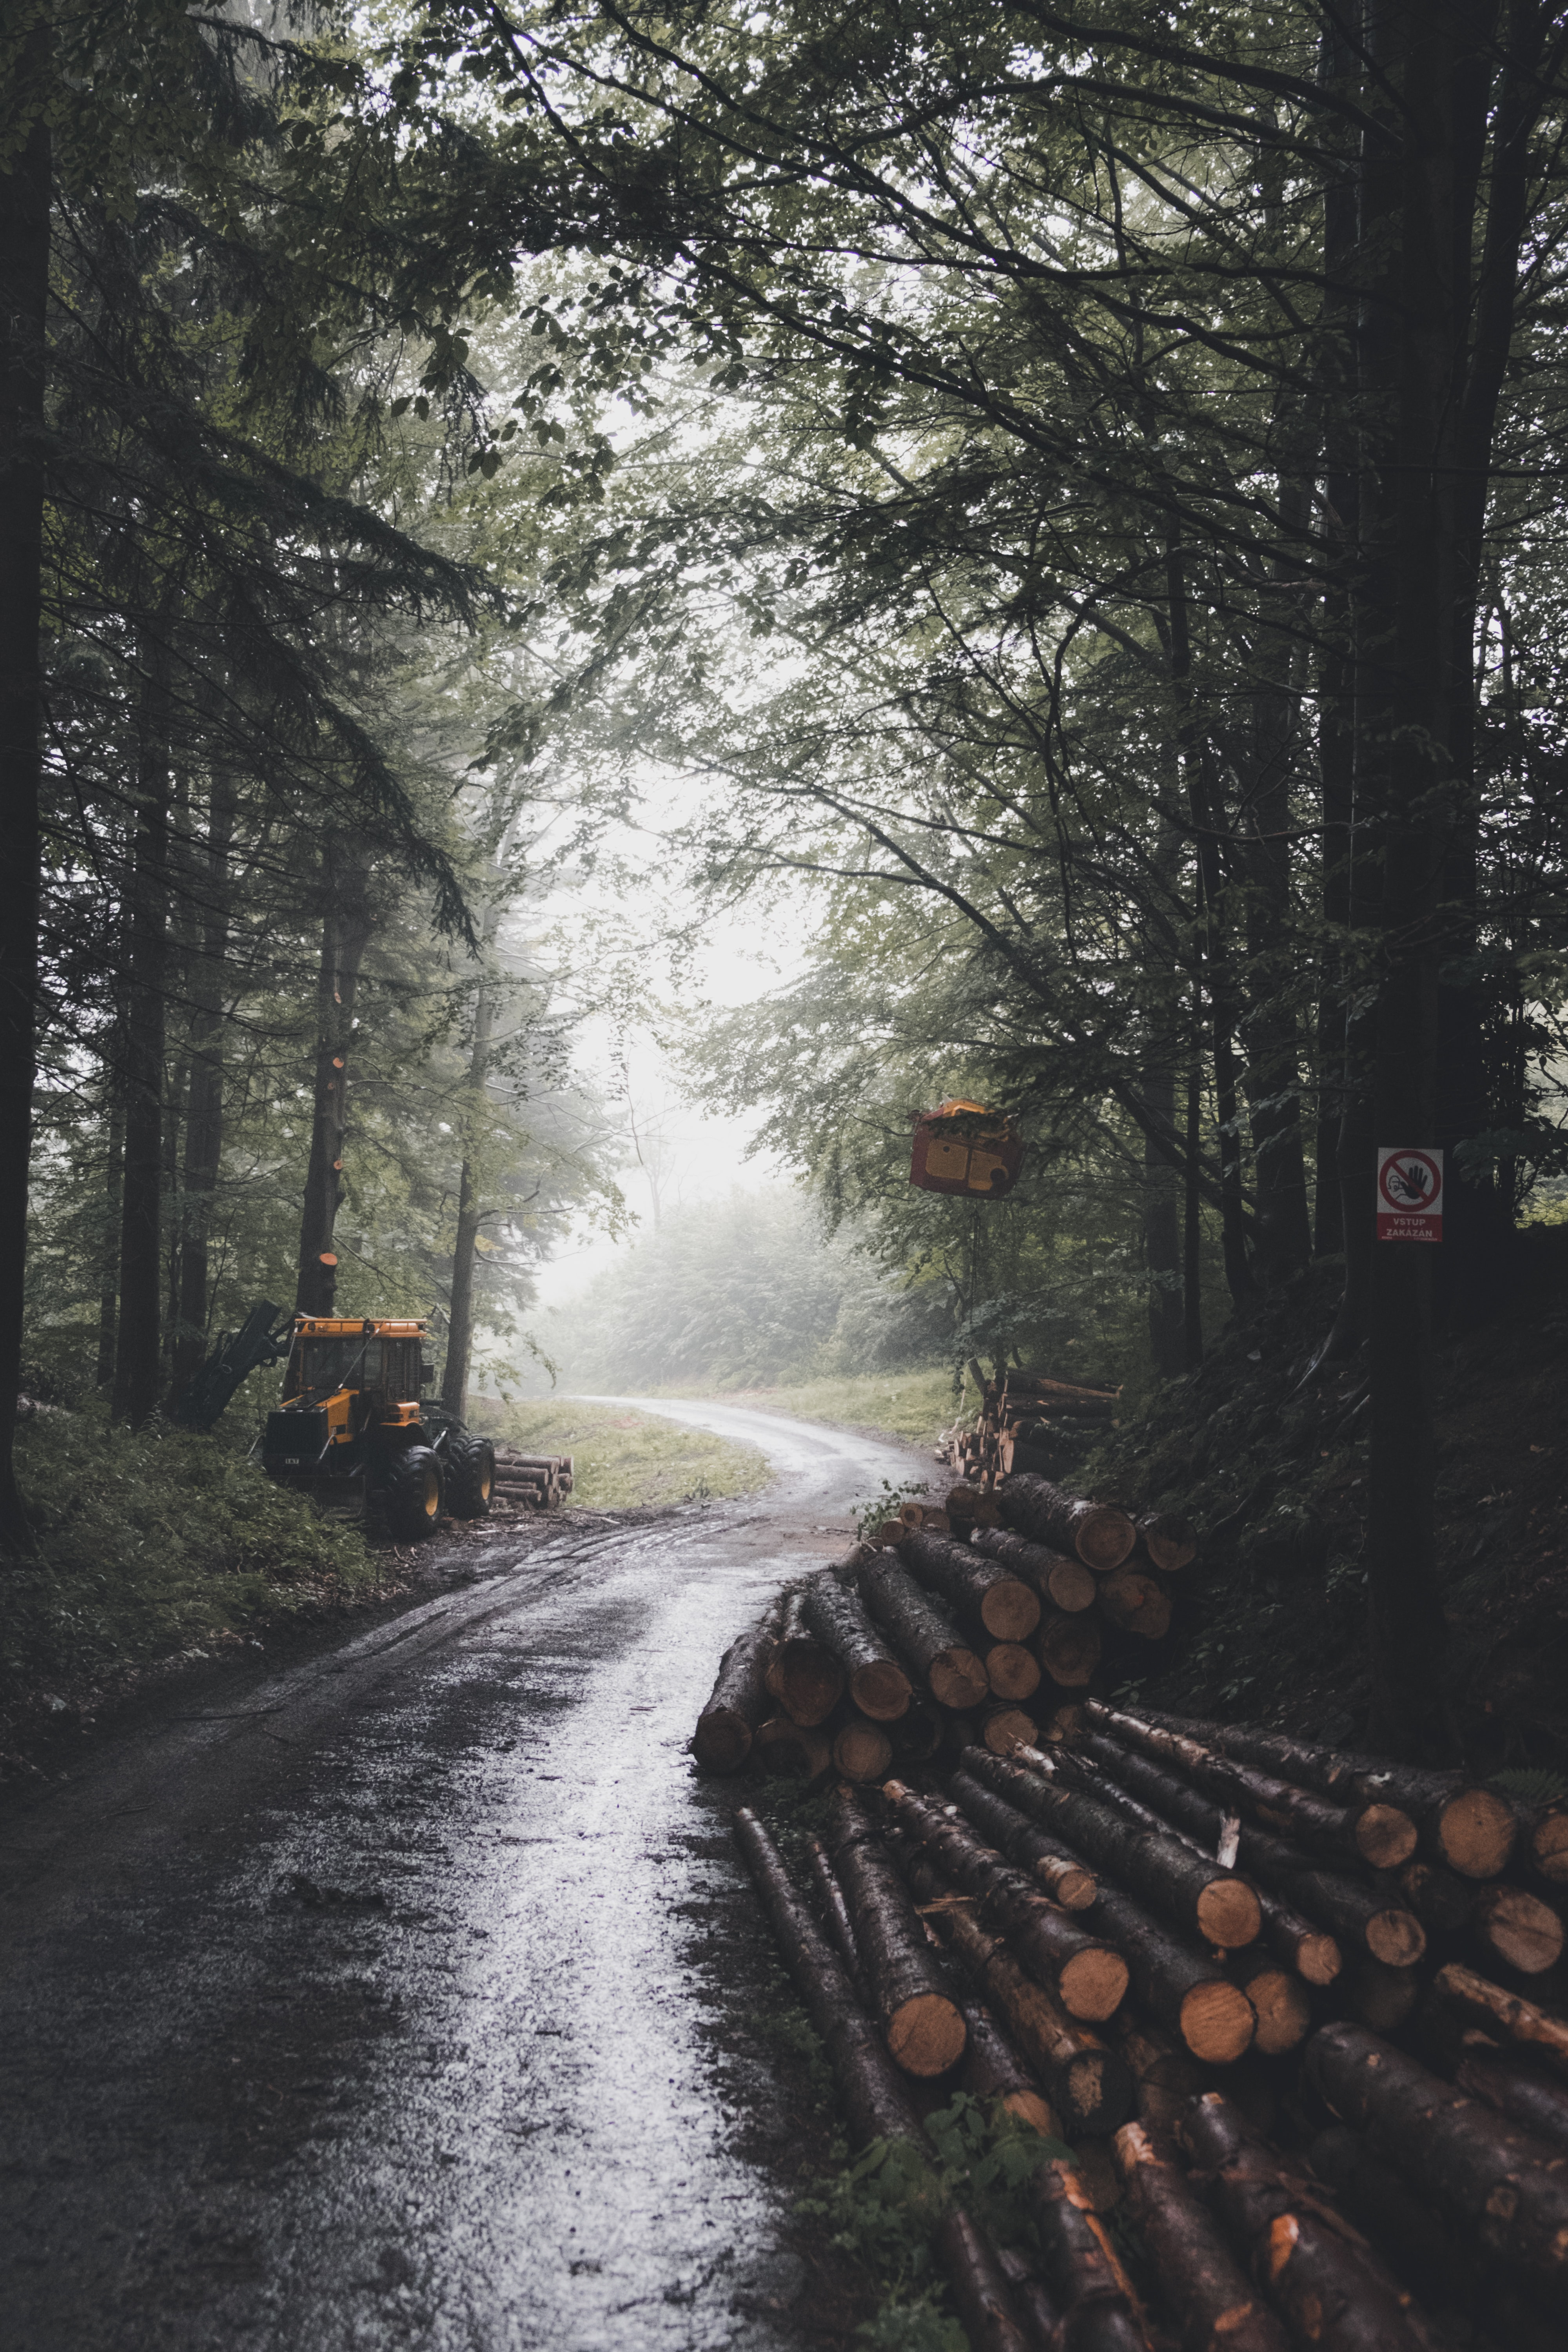 tree logs on road surrounded by trees during daytime